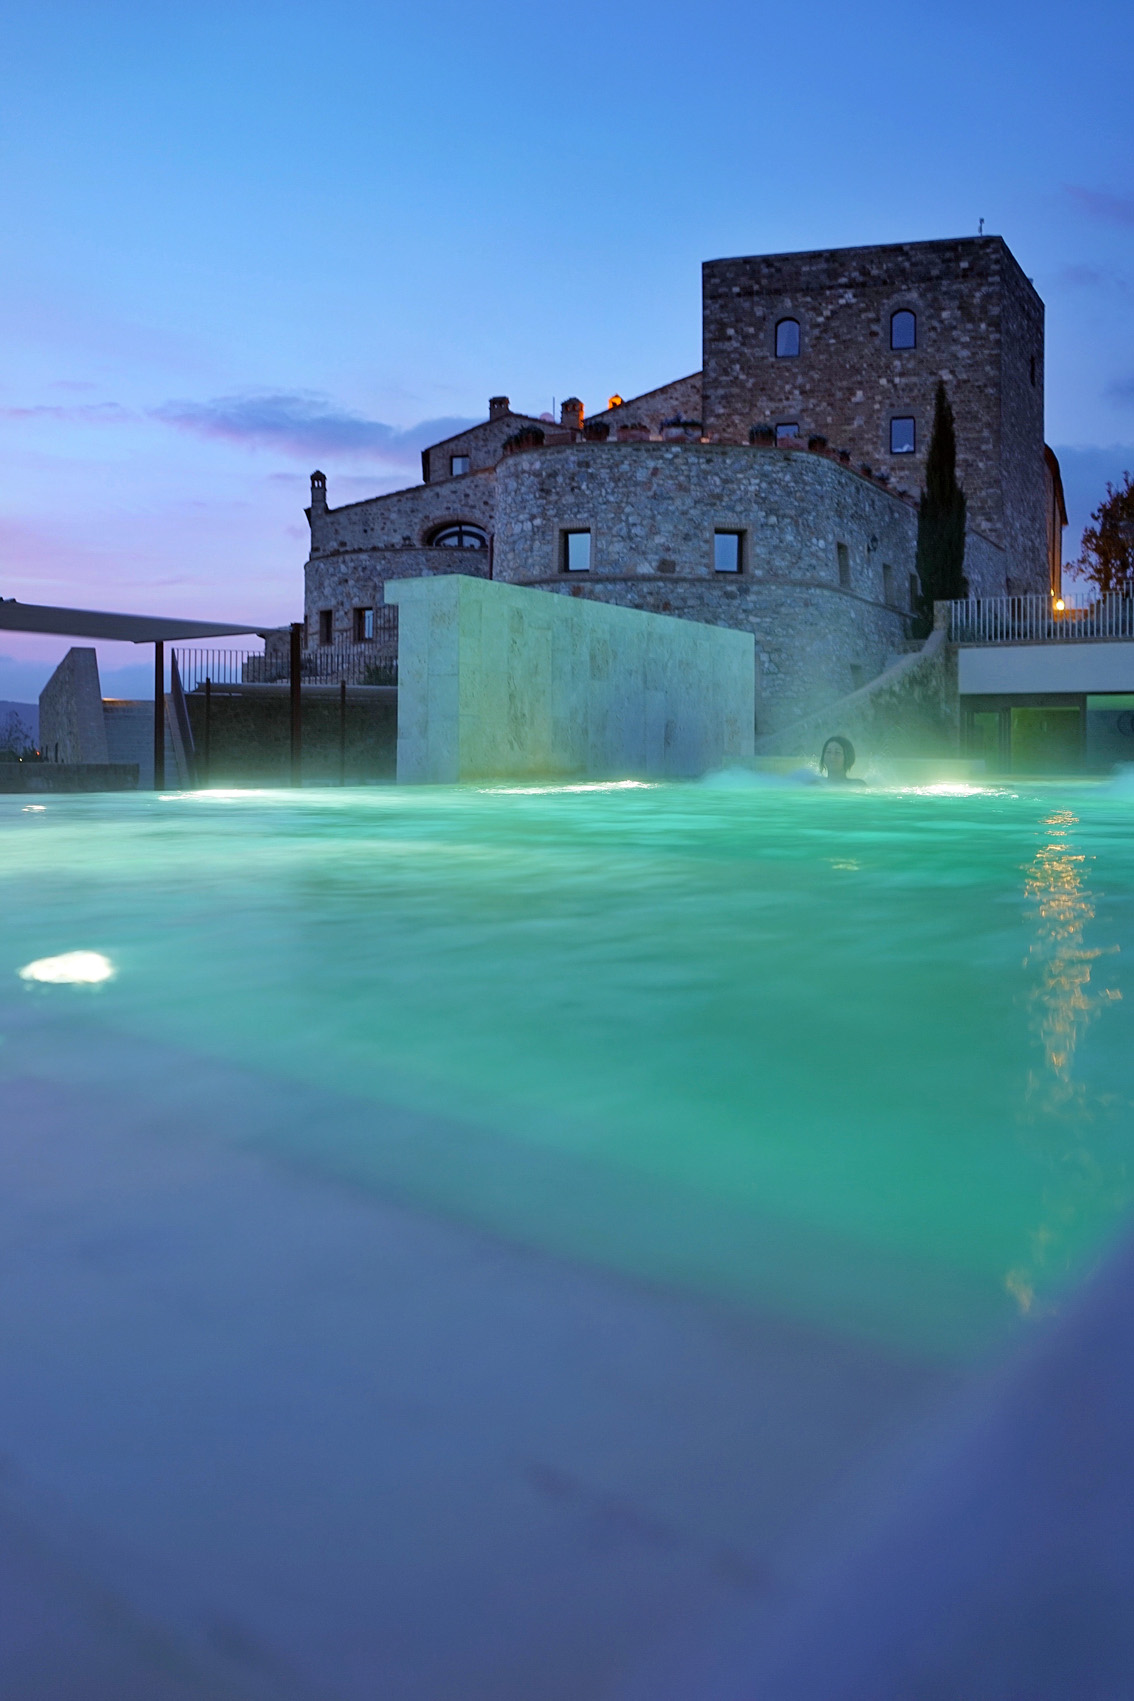 10-2 Dreamy weekend in a Tuscany ancient castle: Castello di Velona.